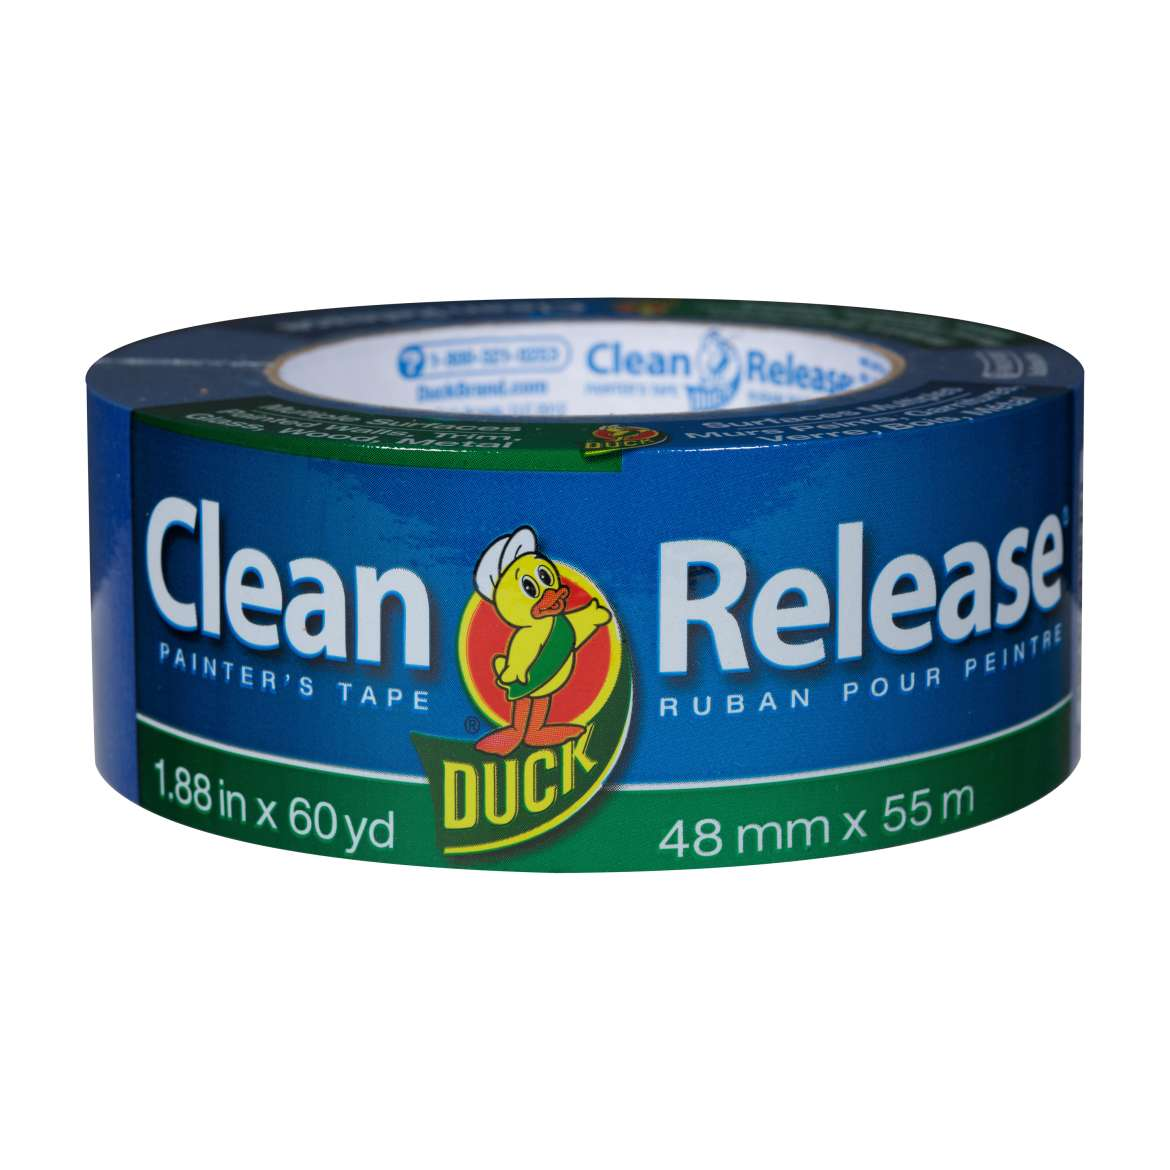 Clean Release® Painter's Tape Image